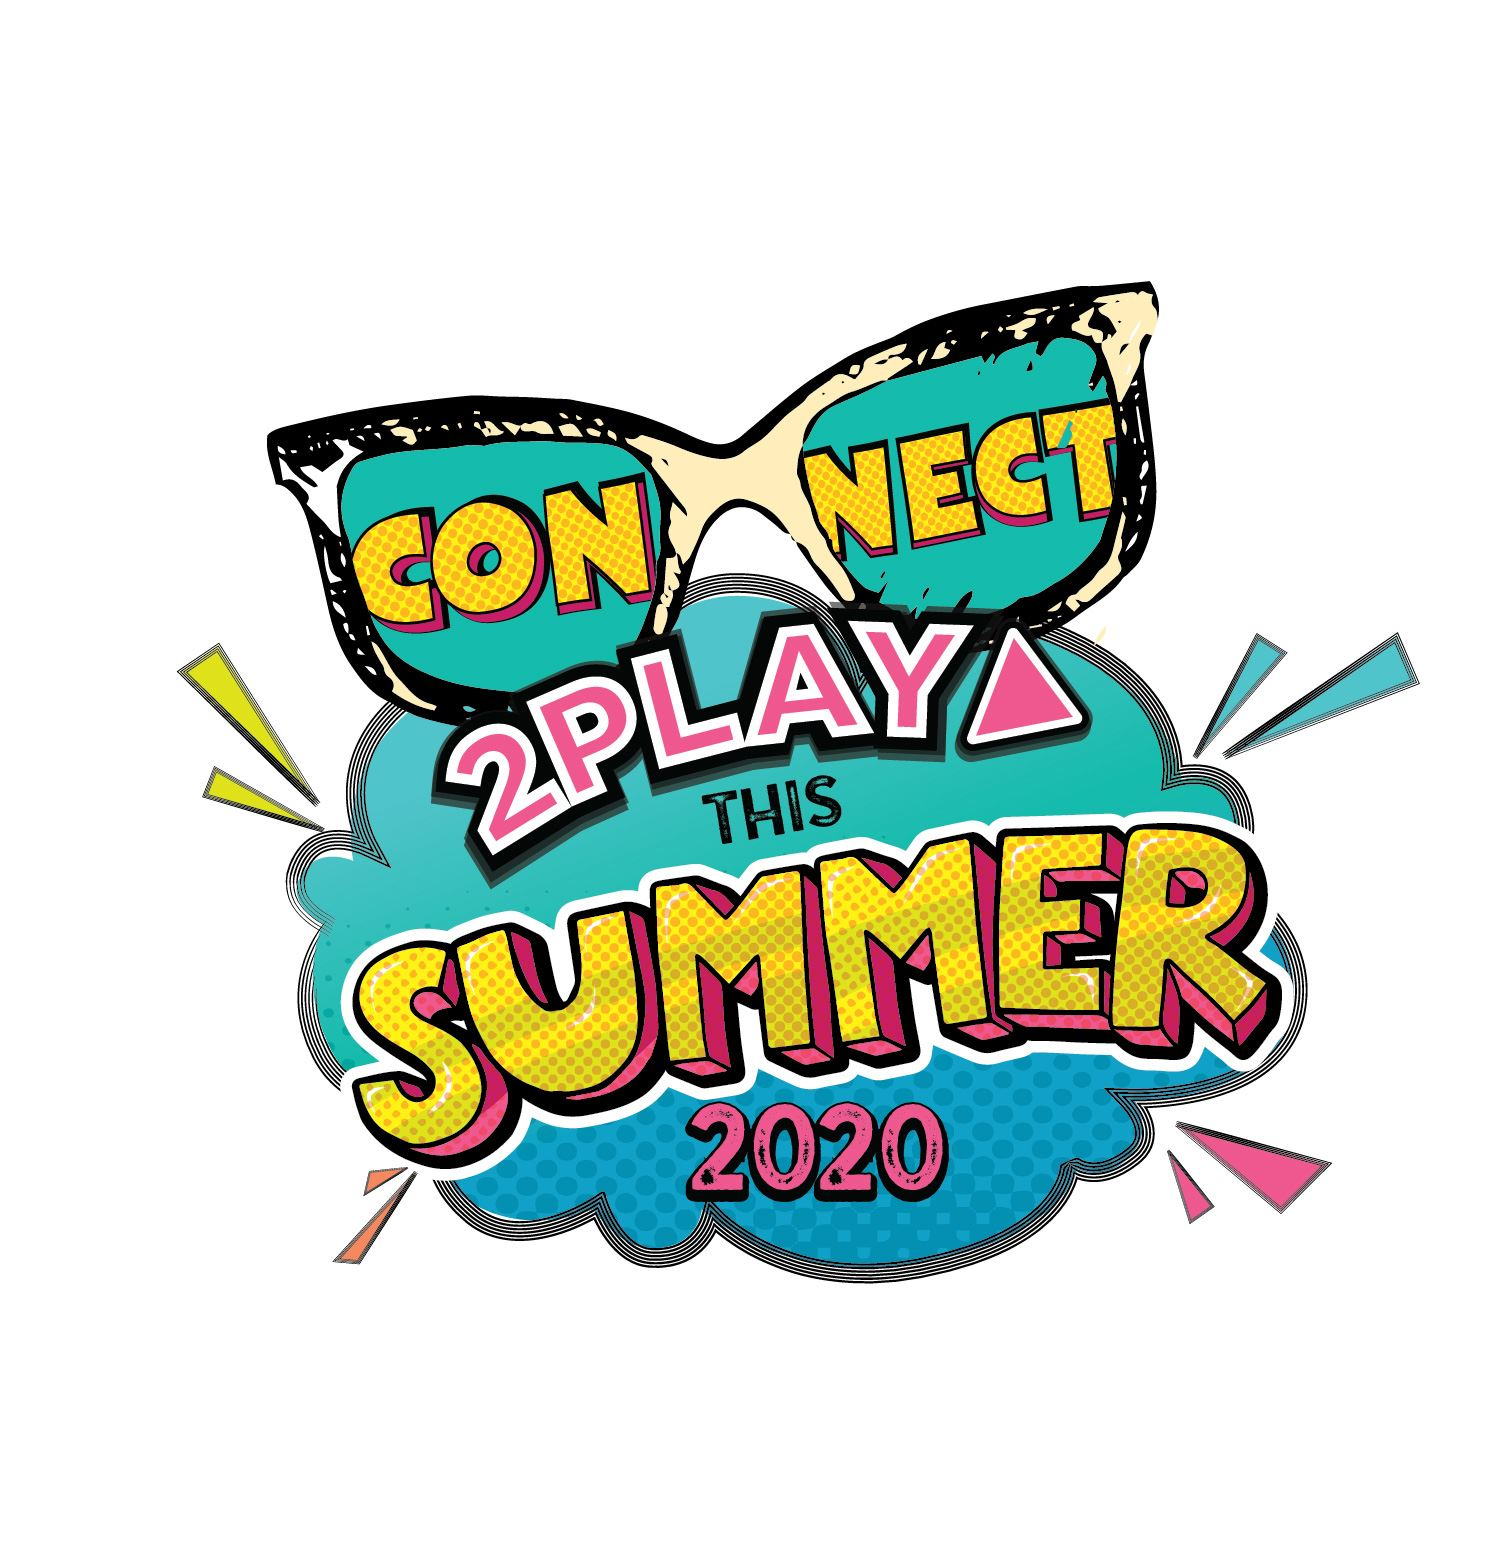 Summer Connect2Play Logo